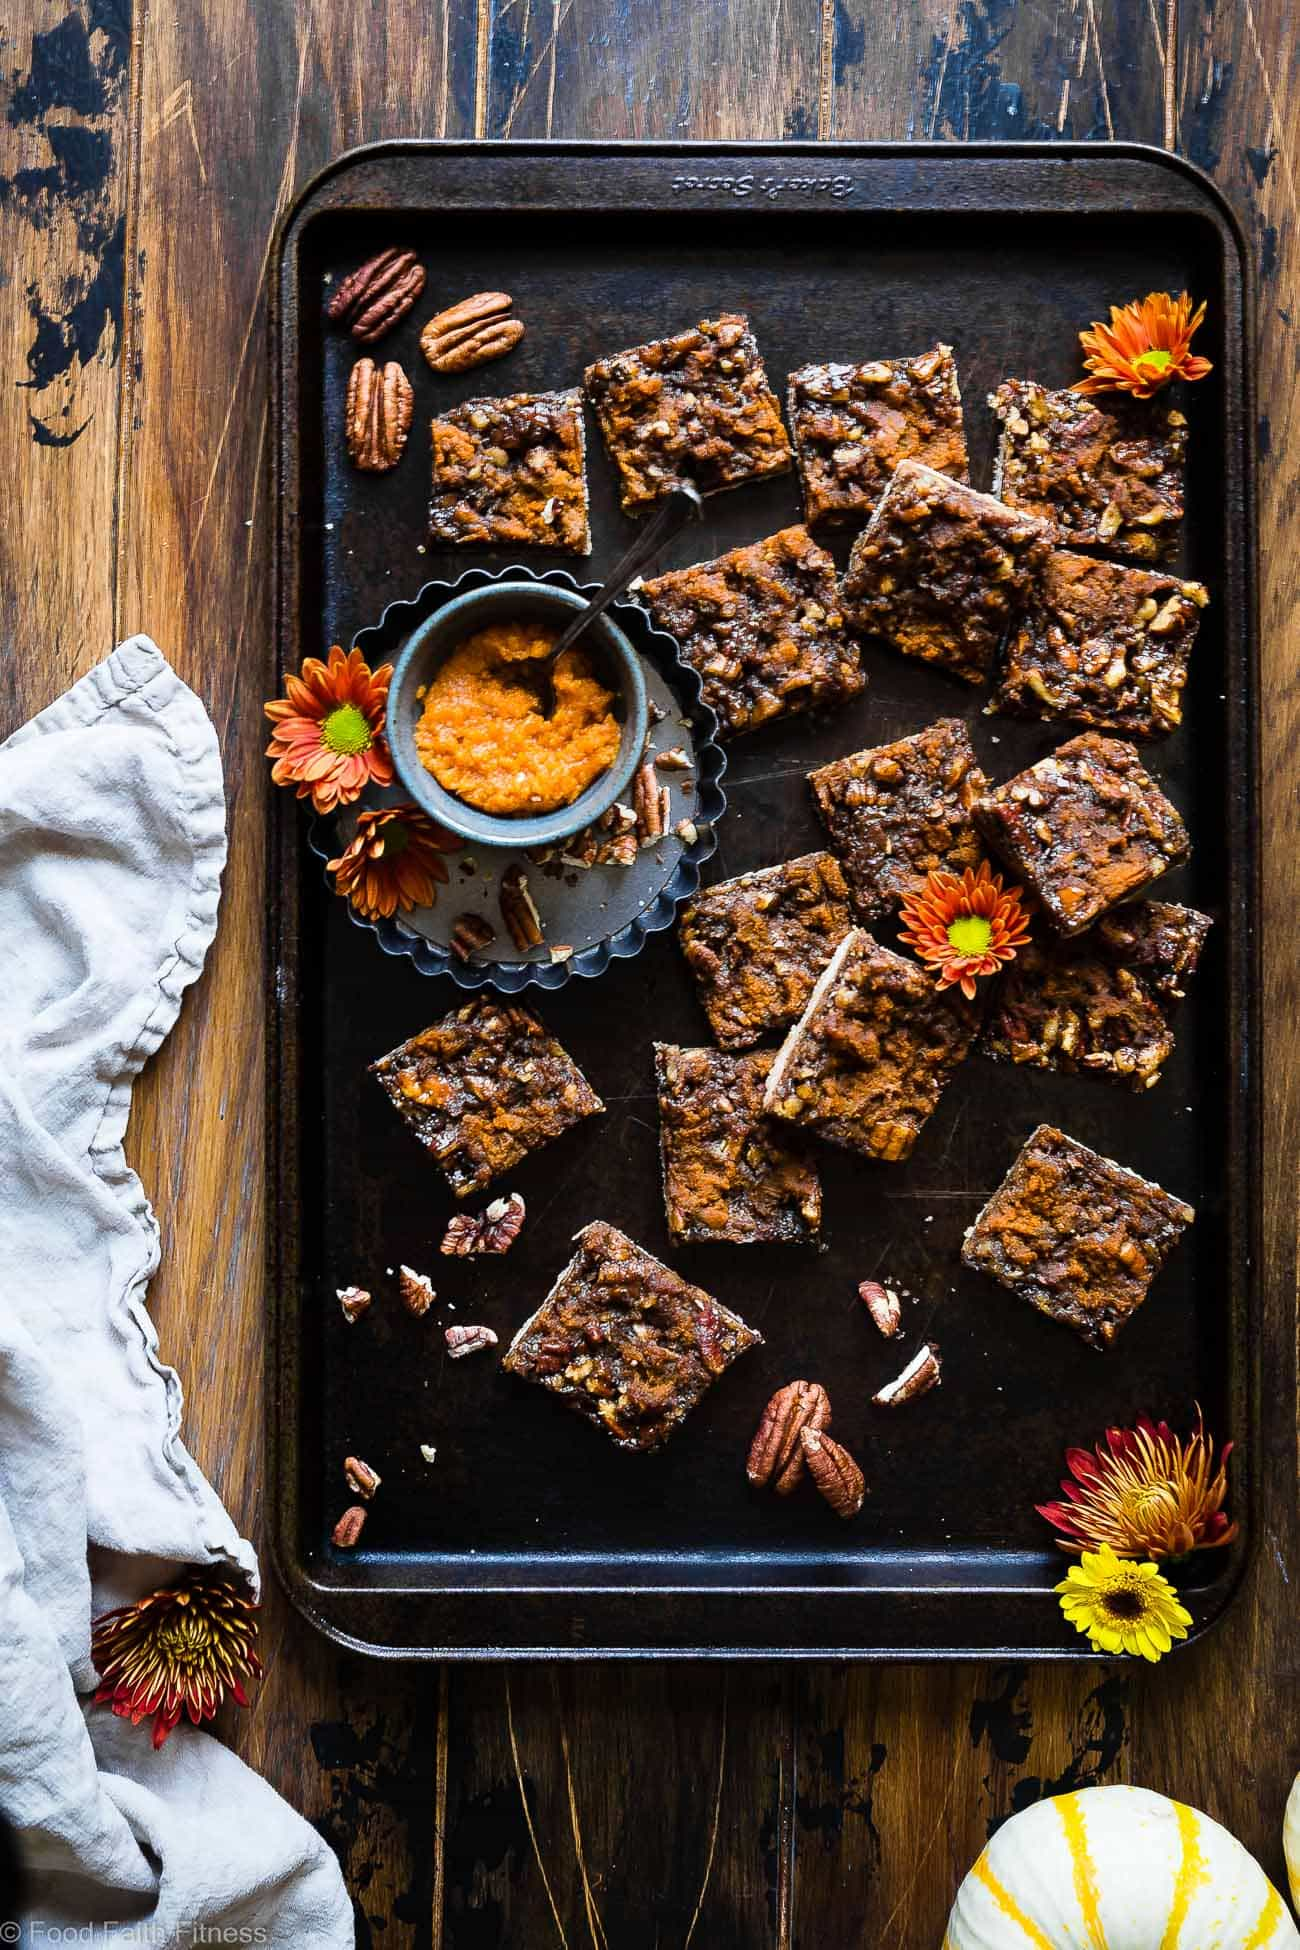 Pumpkin Spice Paleo Vegan Pecan Pie Bars -These easy vegan pecan pie bars are only 8 ingredients and have a pumpkin spice spin! A gluten/grain/dairy/egg free dessert for Thanksgiving that's paleo friendly! | Foodfaithfitness.com | @FoodFaithFit